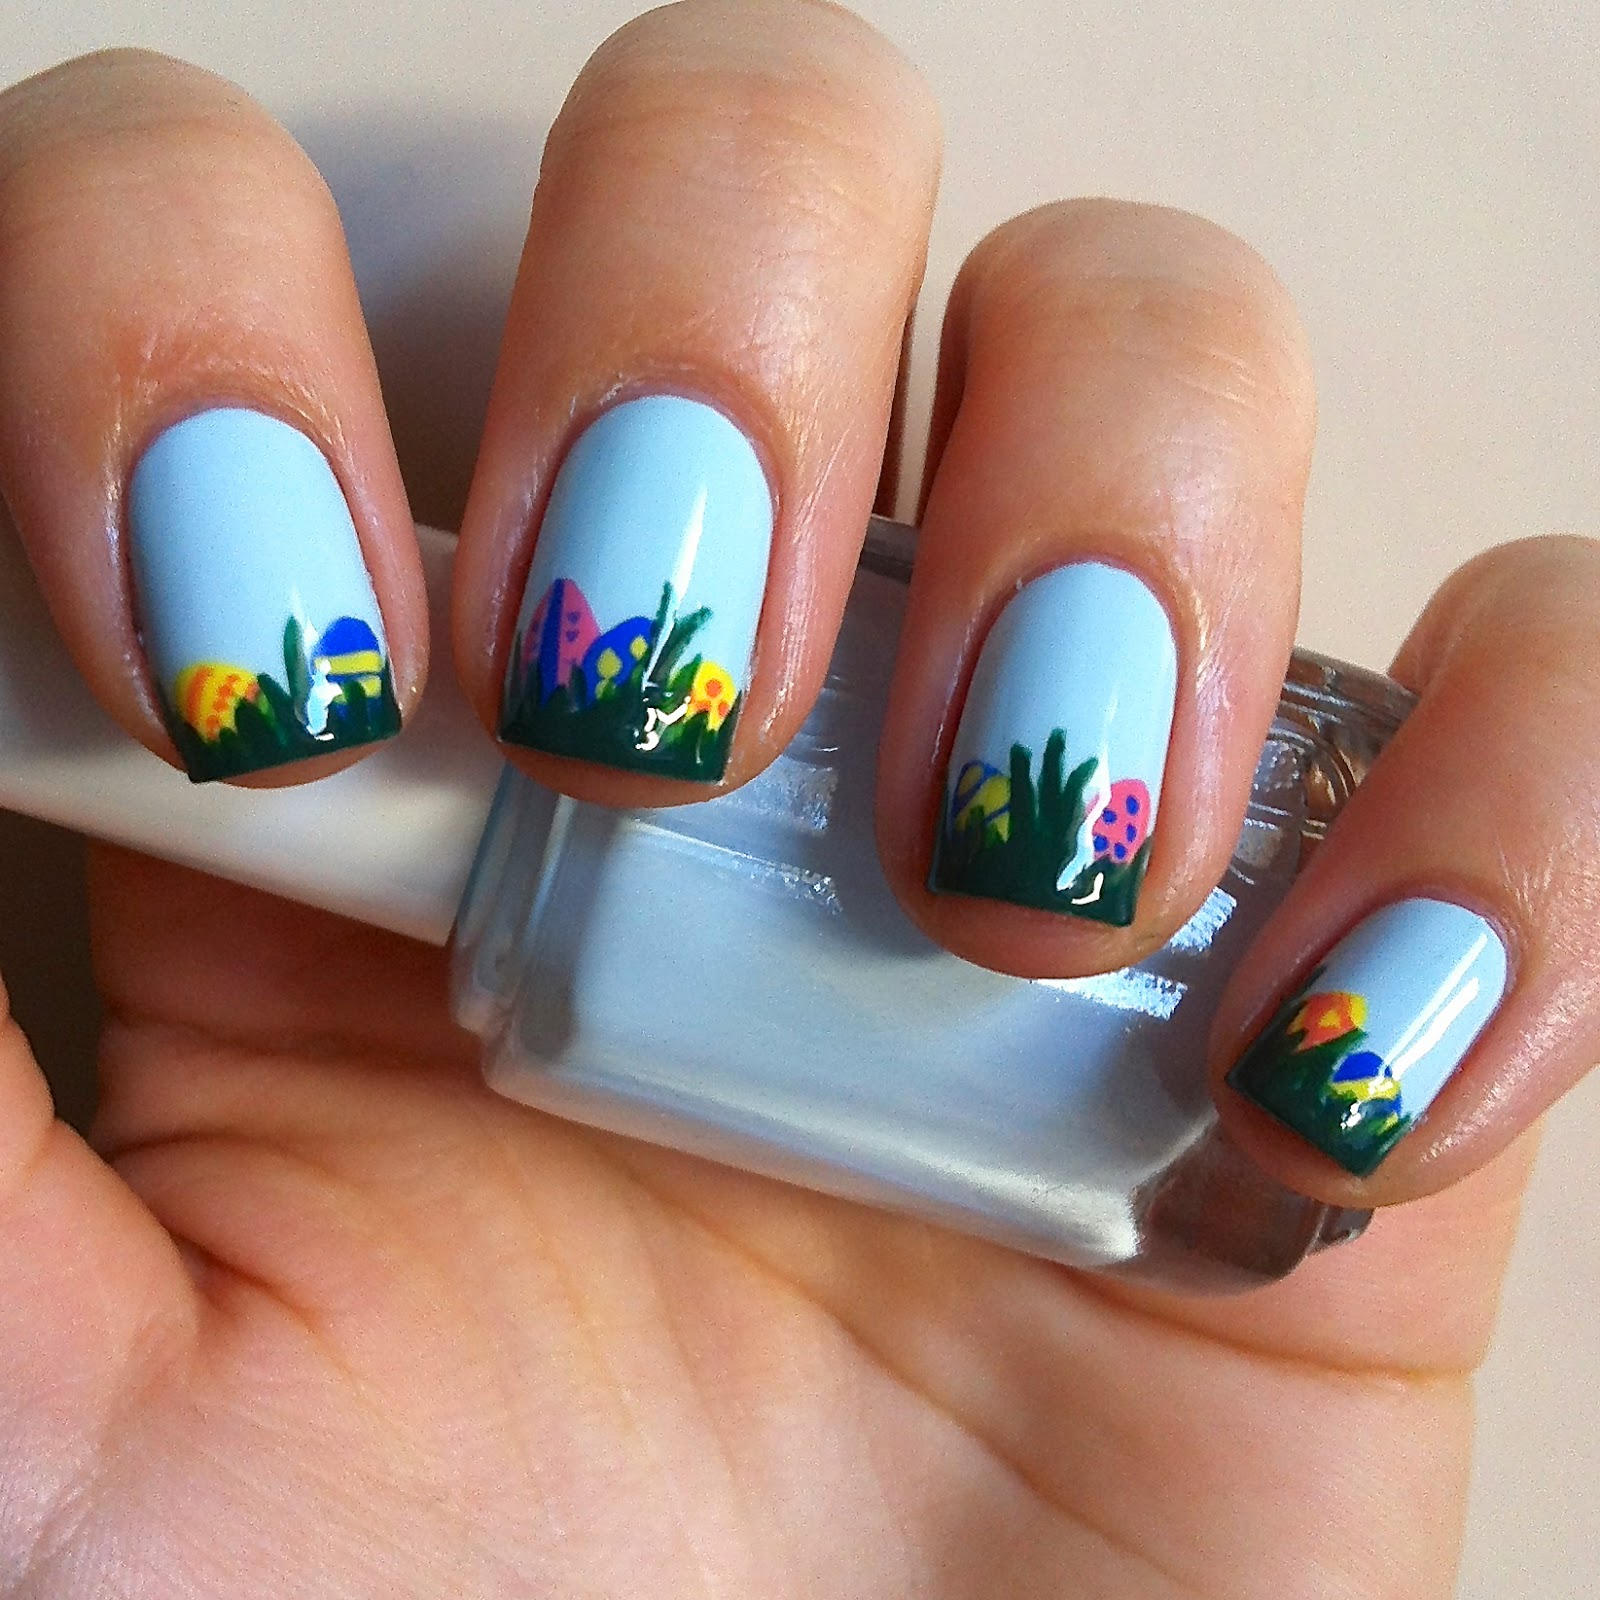 Easter Nail Art Designs: Nails Always Polished: Easter Manicure #4